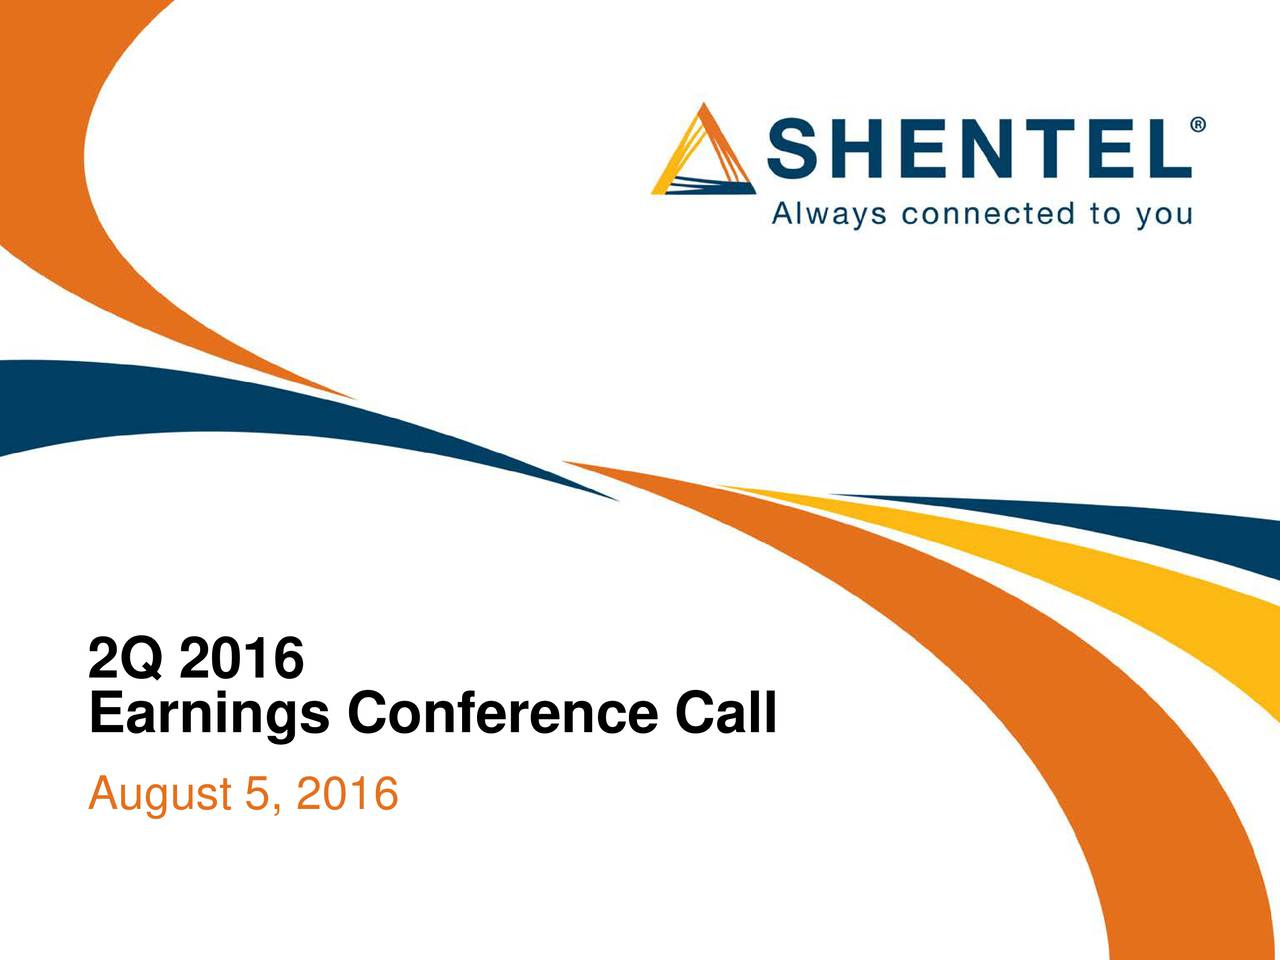 Earnings Conference Call August 5, 2016